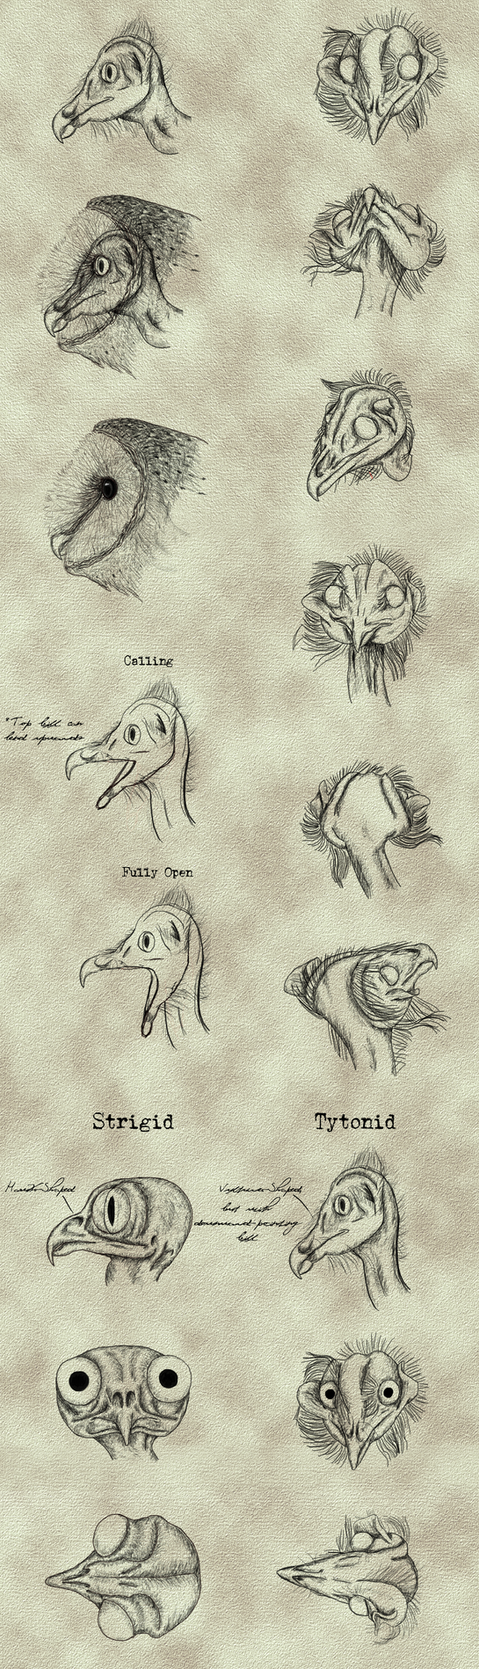 Tyto alba - Head Studies by Earldense